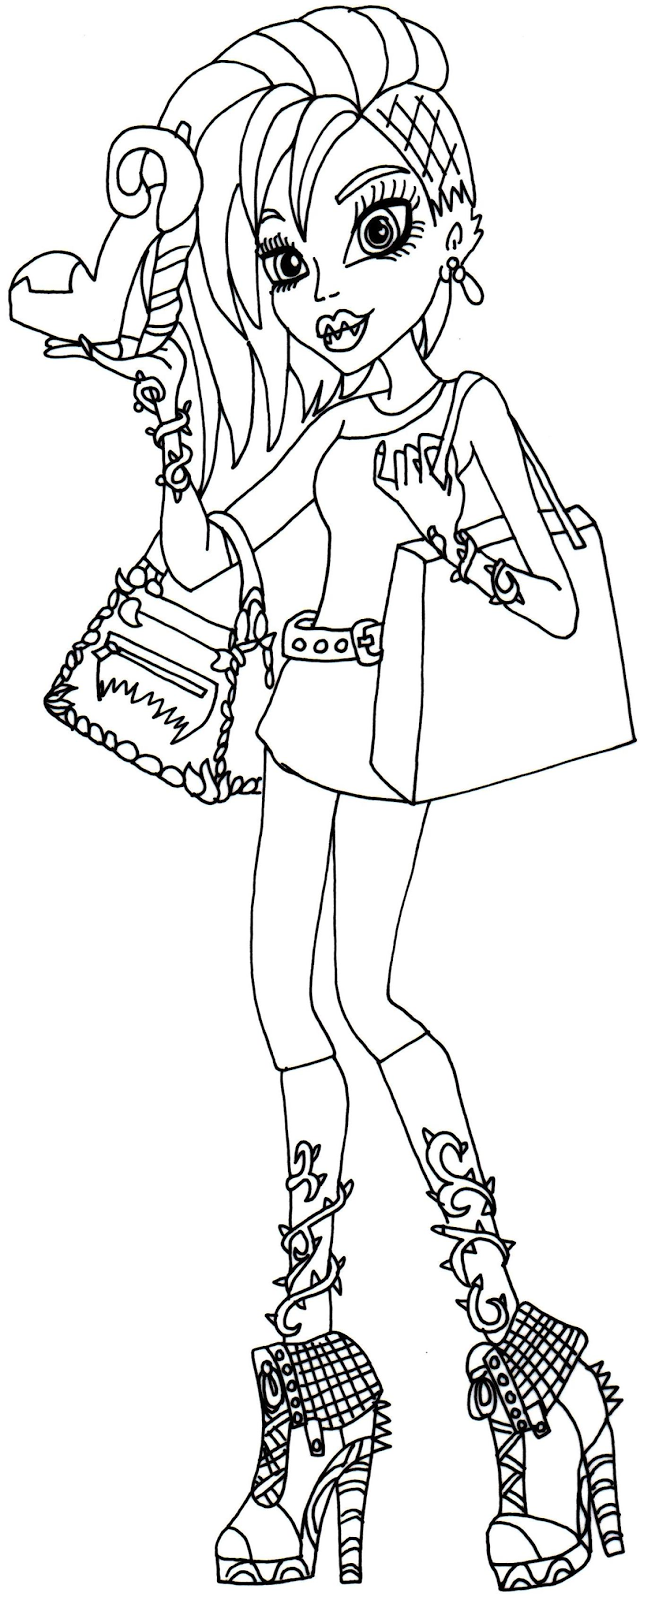 Crush image in monster high coloring pages printable